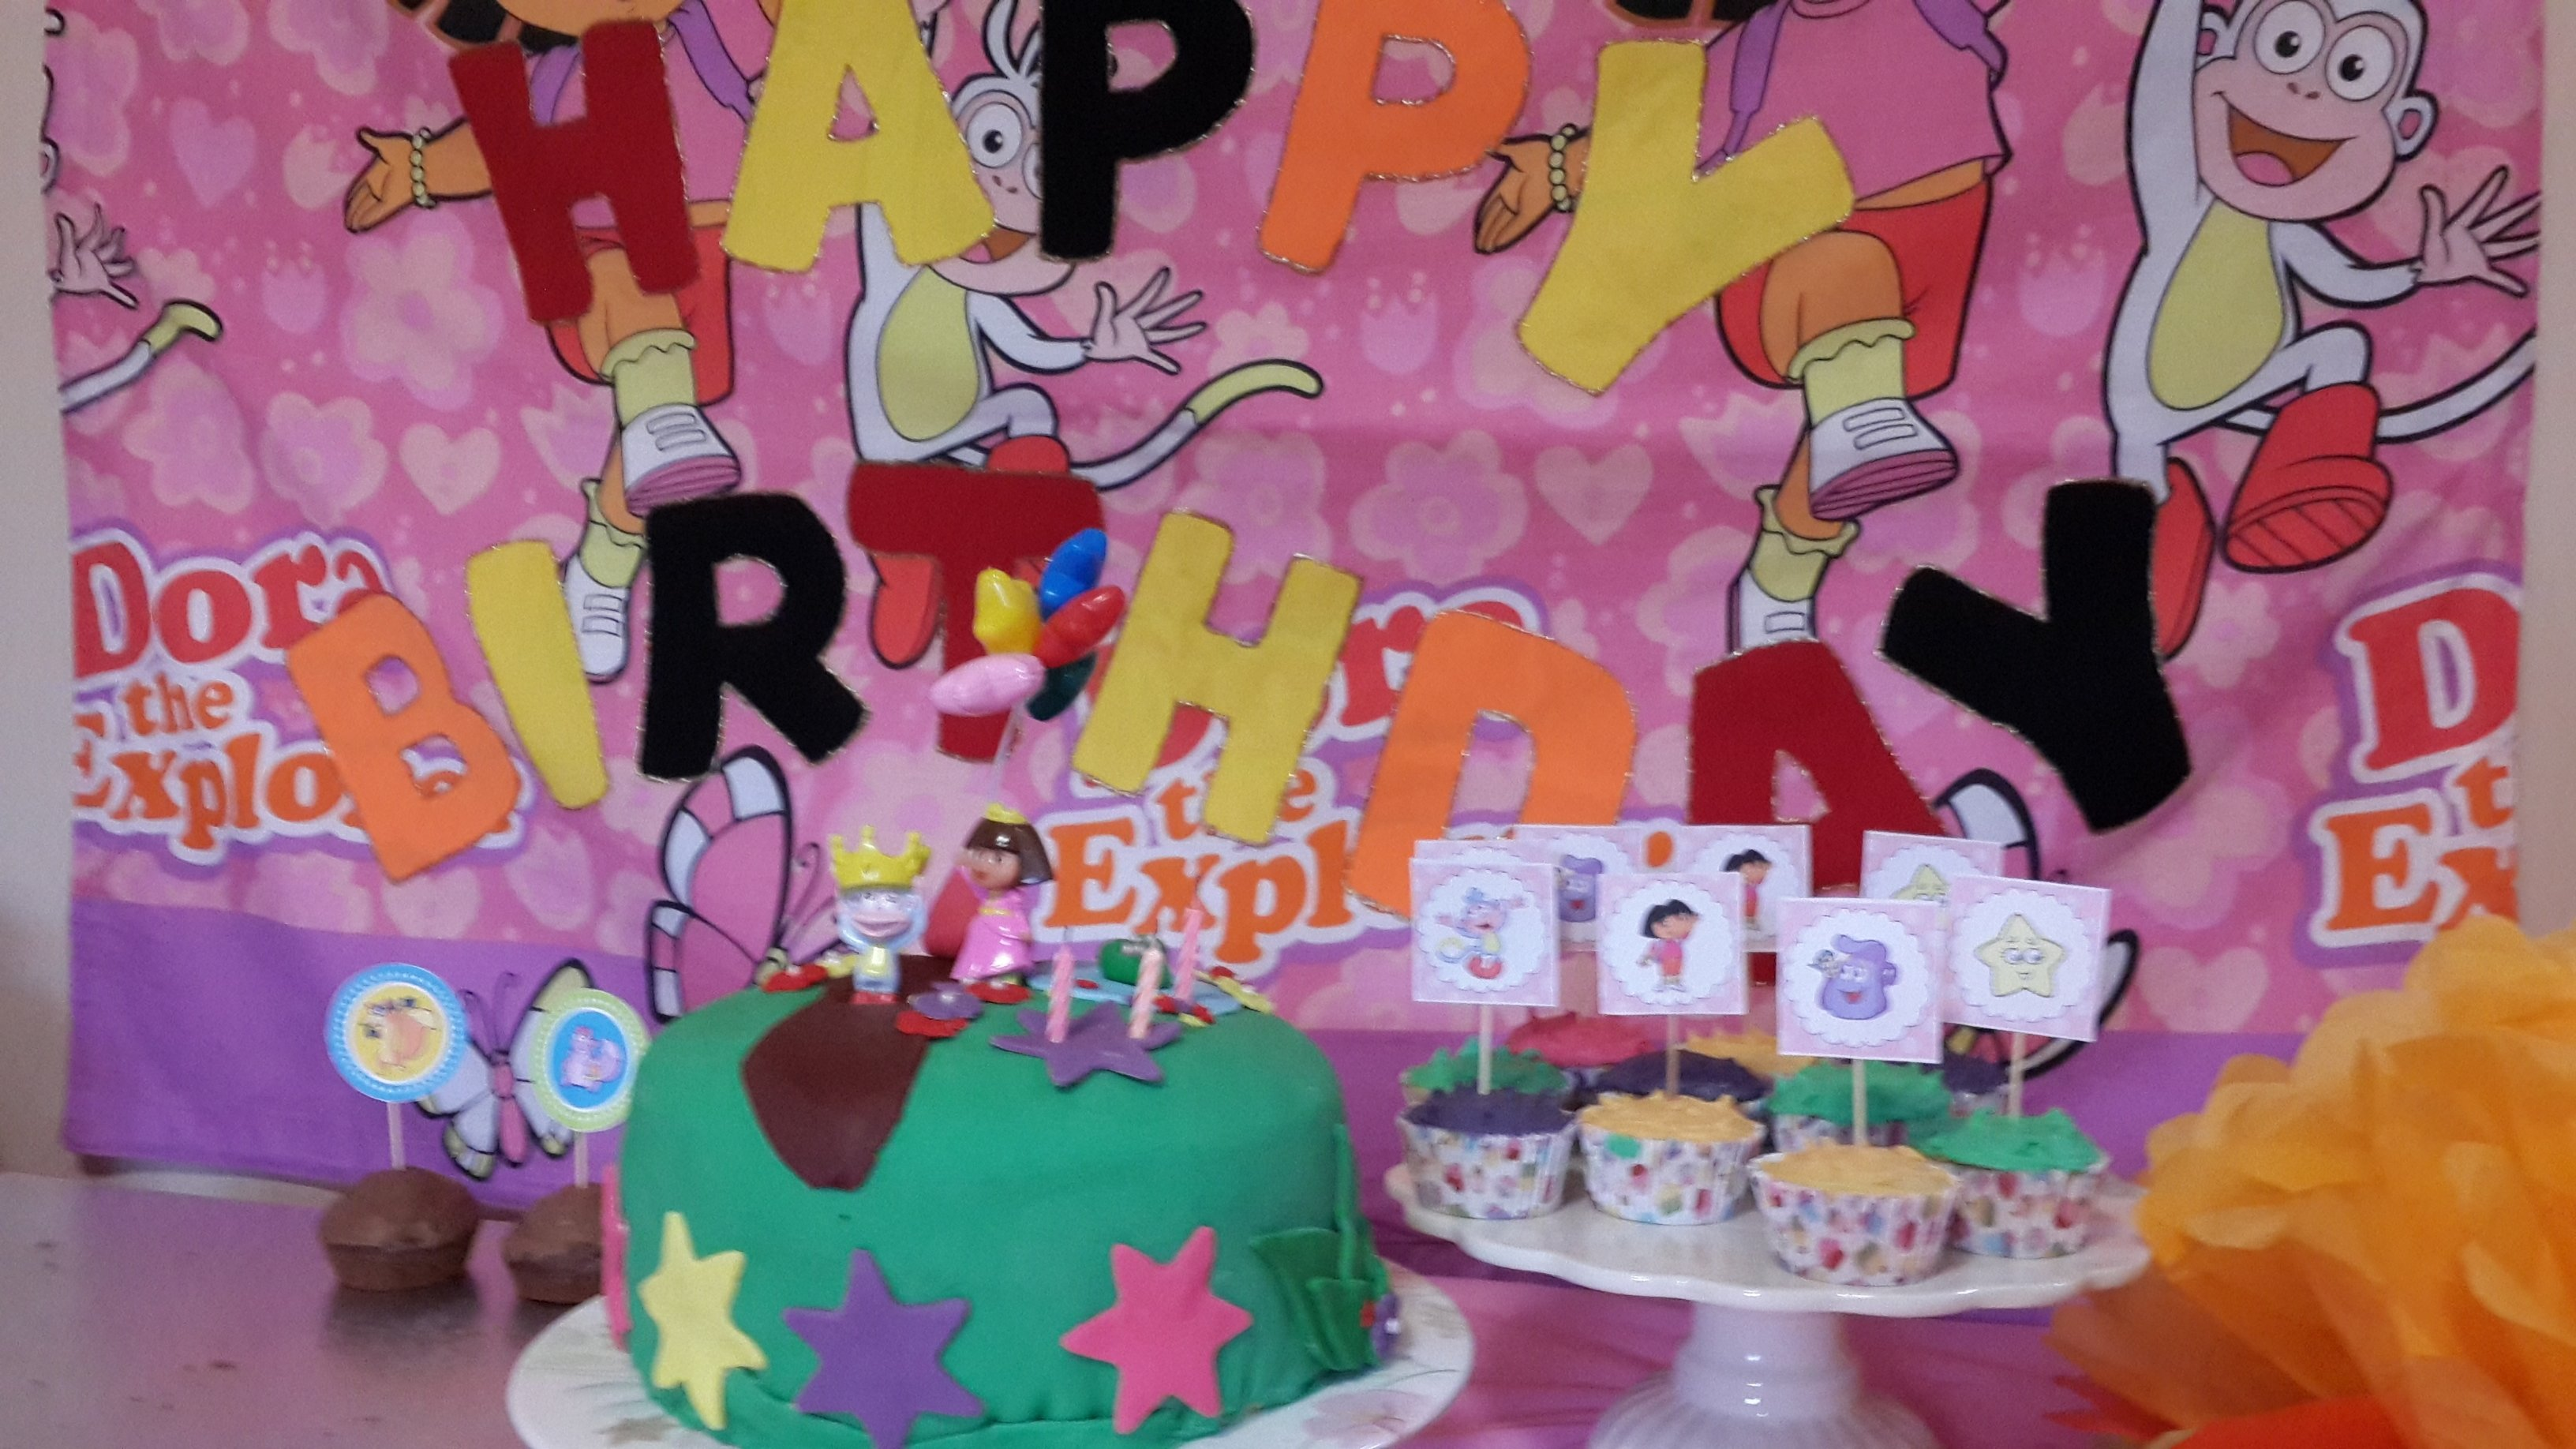 10 Lovable Dora The Explorer Party Ideas morgan lees dora the explorer birthday party ideas free templates 1